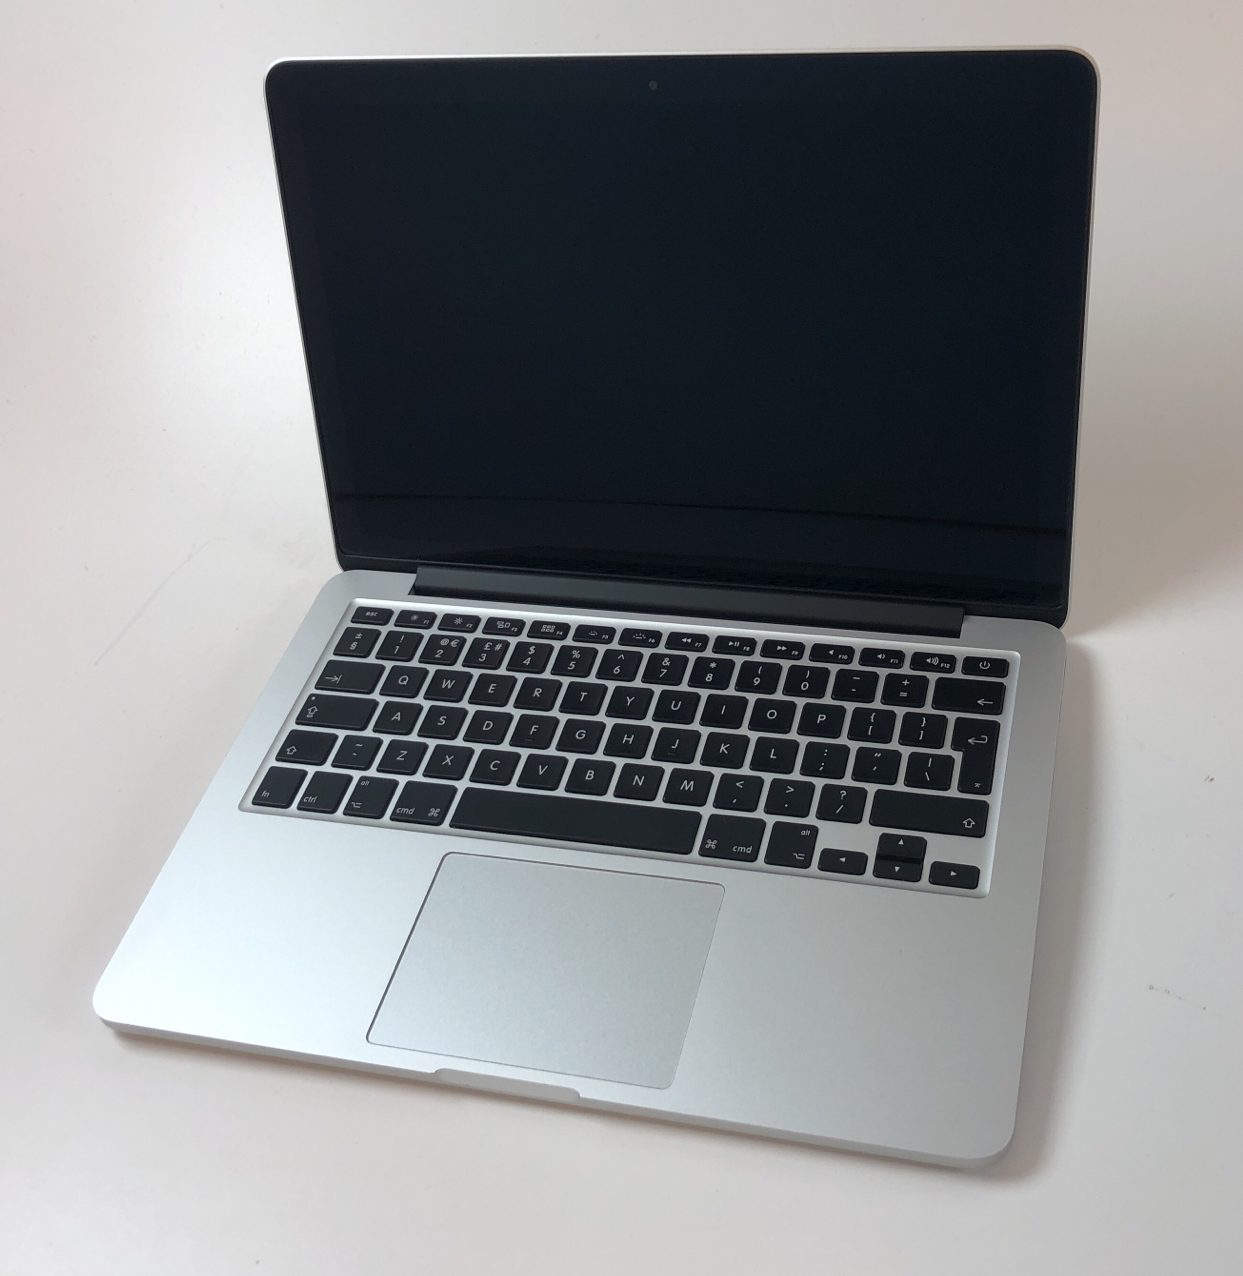 "MacBook Pro Retina 13"" Mid 2014 (Intel Core i5 2.6 GHz 8 GB RAM 128 GB SSD), Intel Core i5 2.6 GHz, 8 GB RAM, 128 GB SSD, image 1"